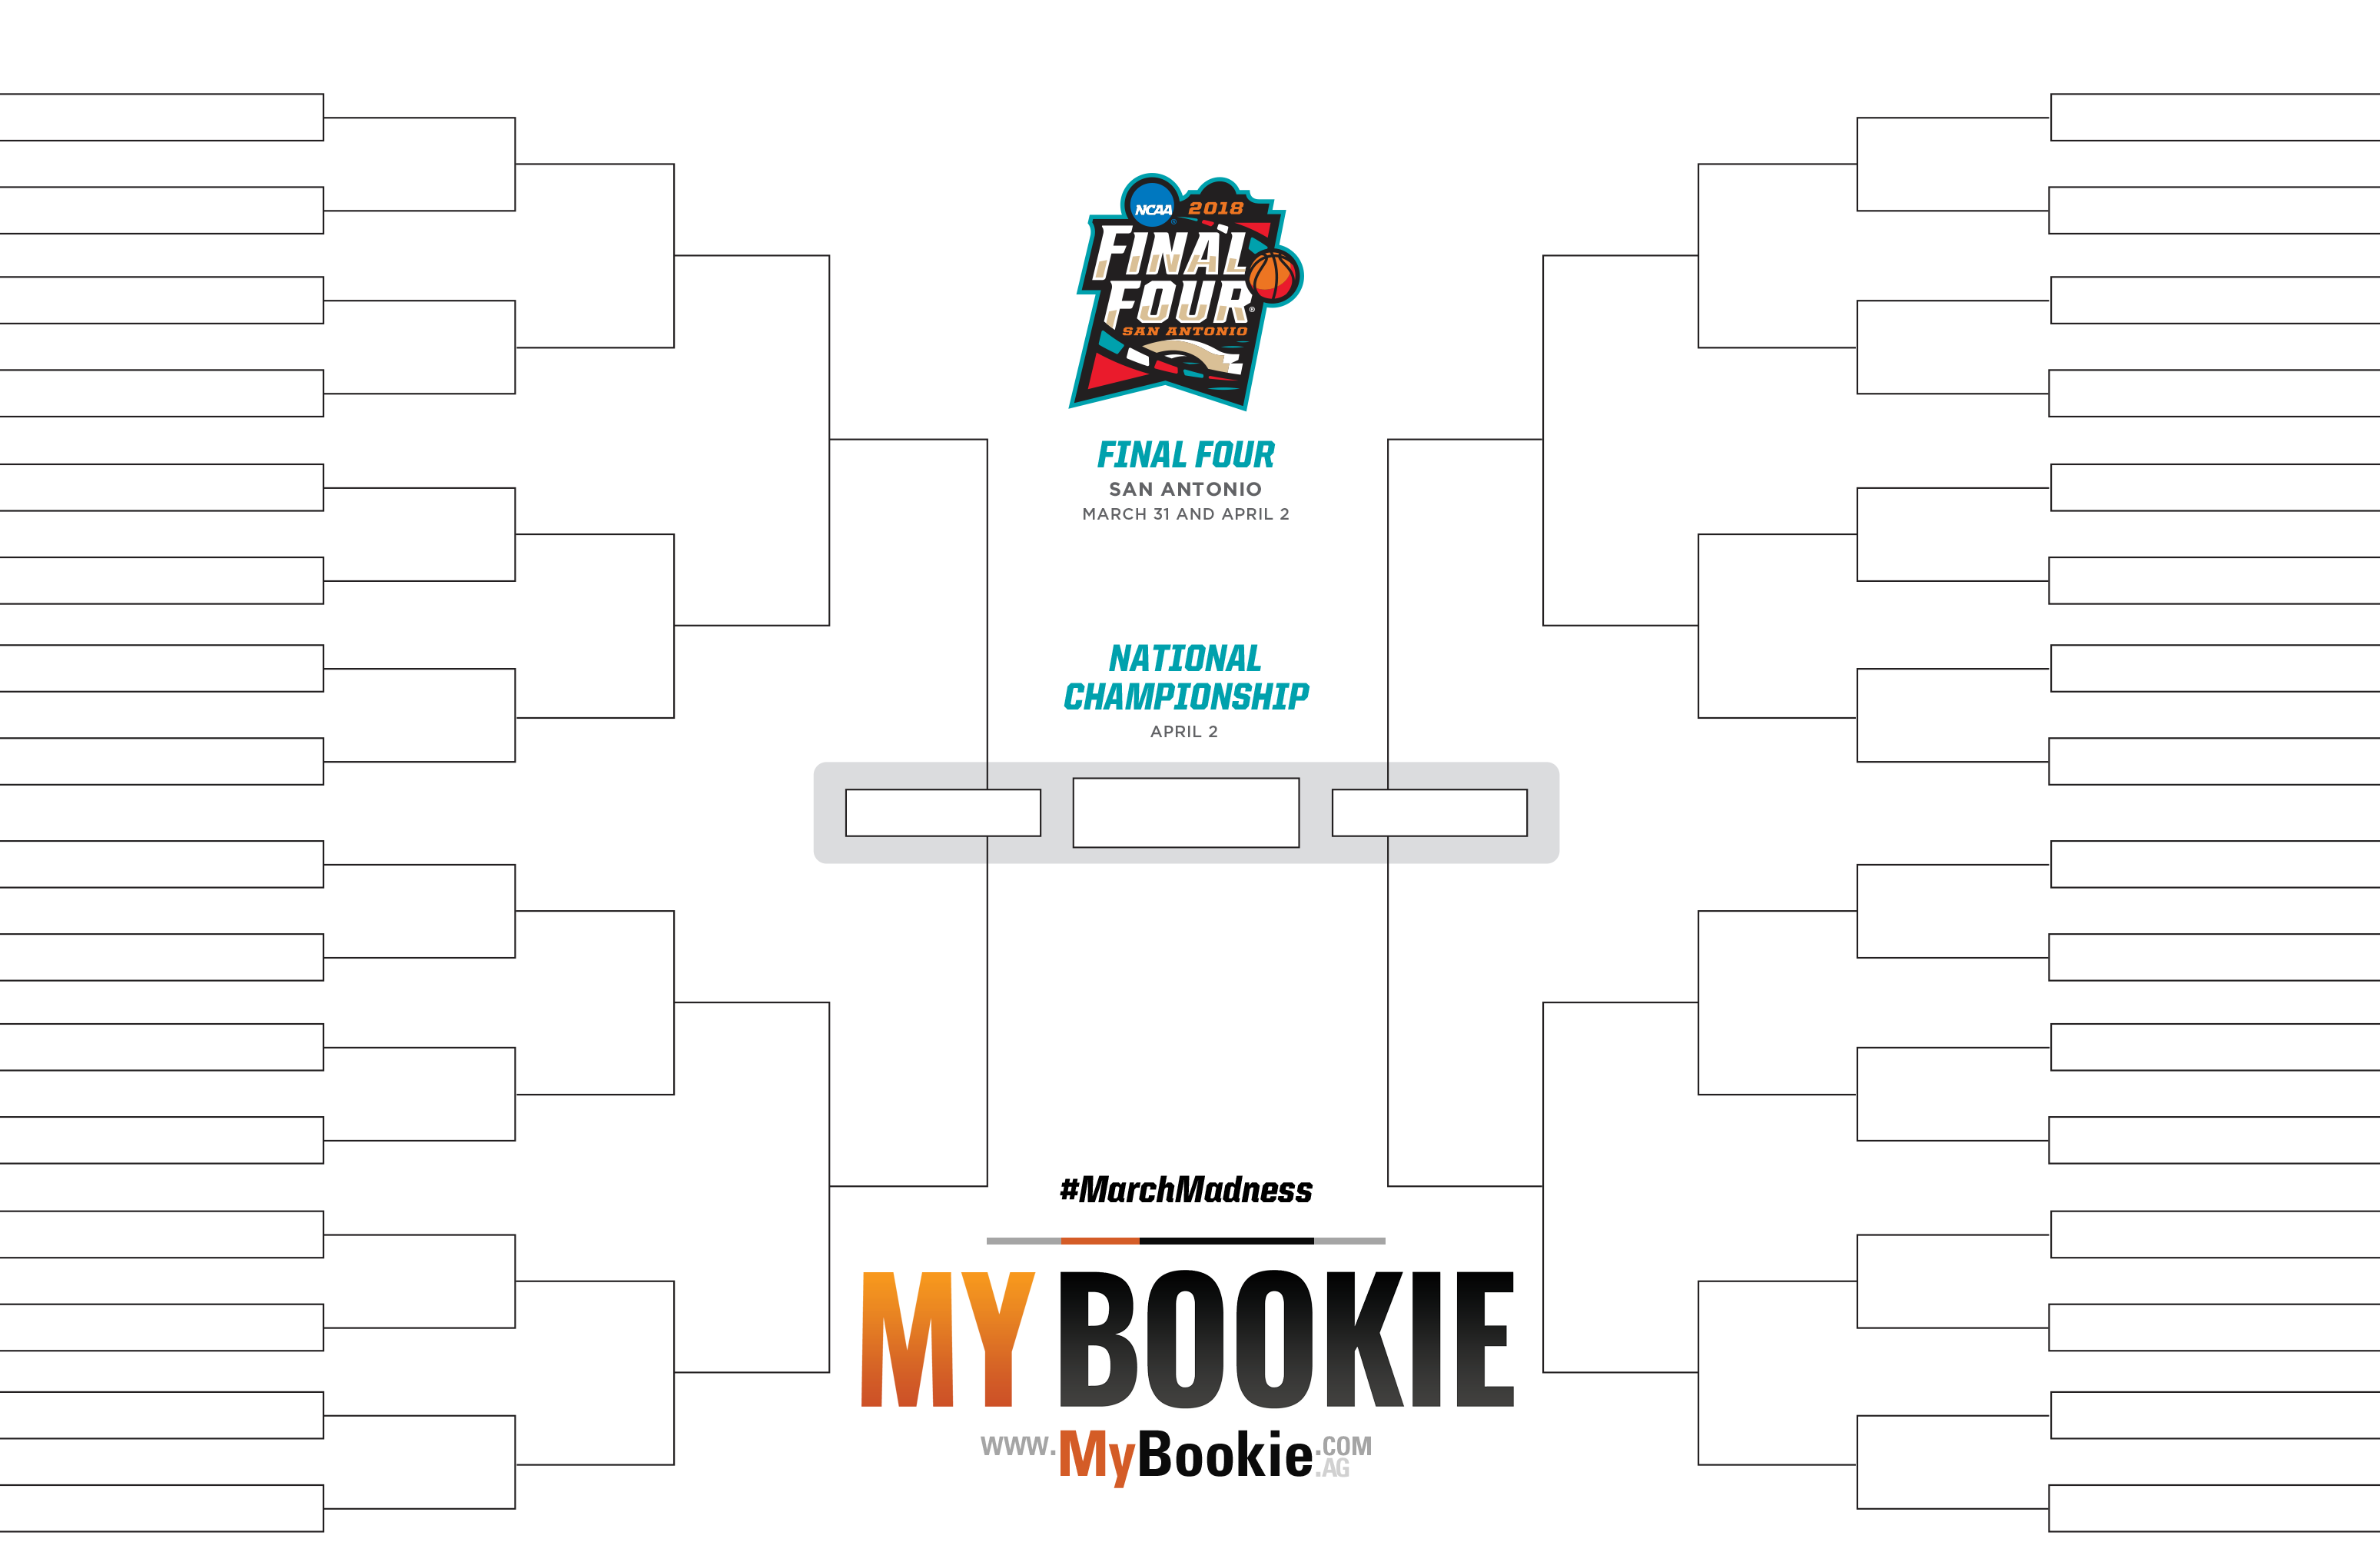 March Madness 2018 Printable NCAA Bracket | MyBookie Sportsbook